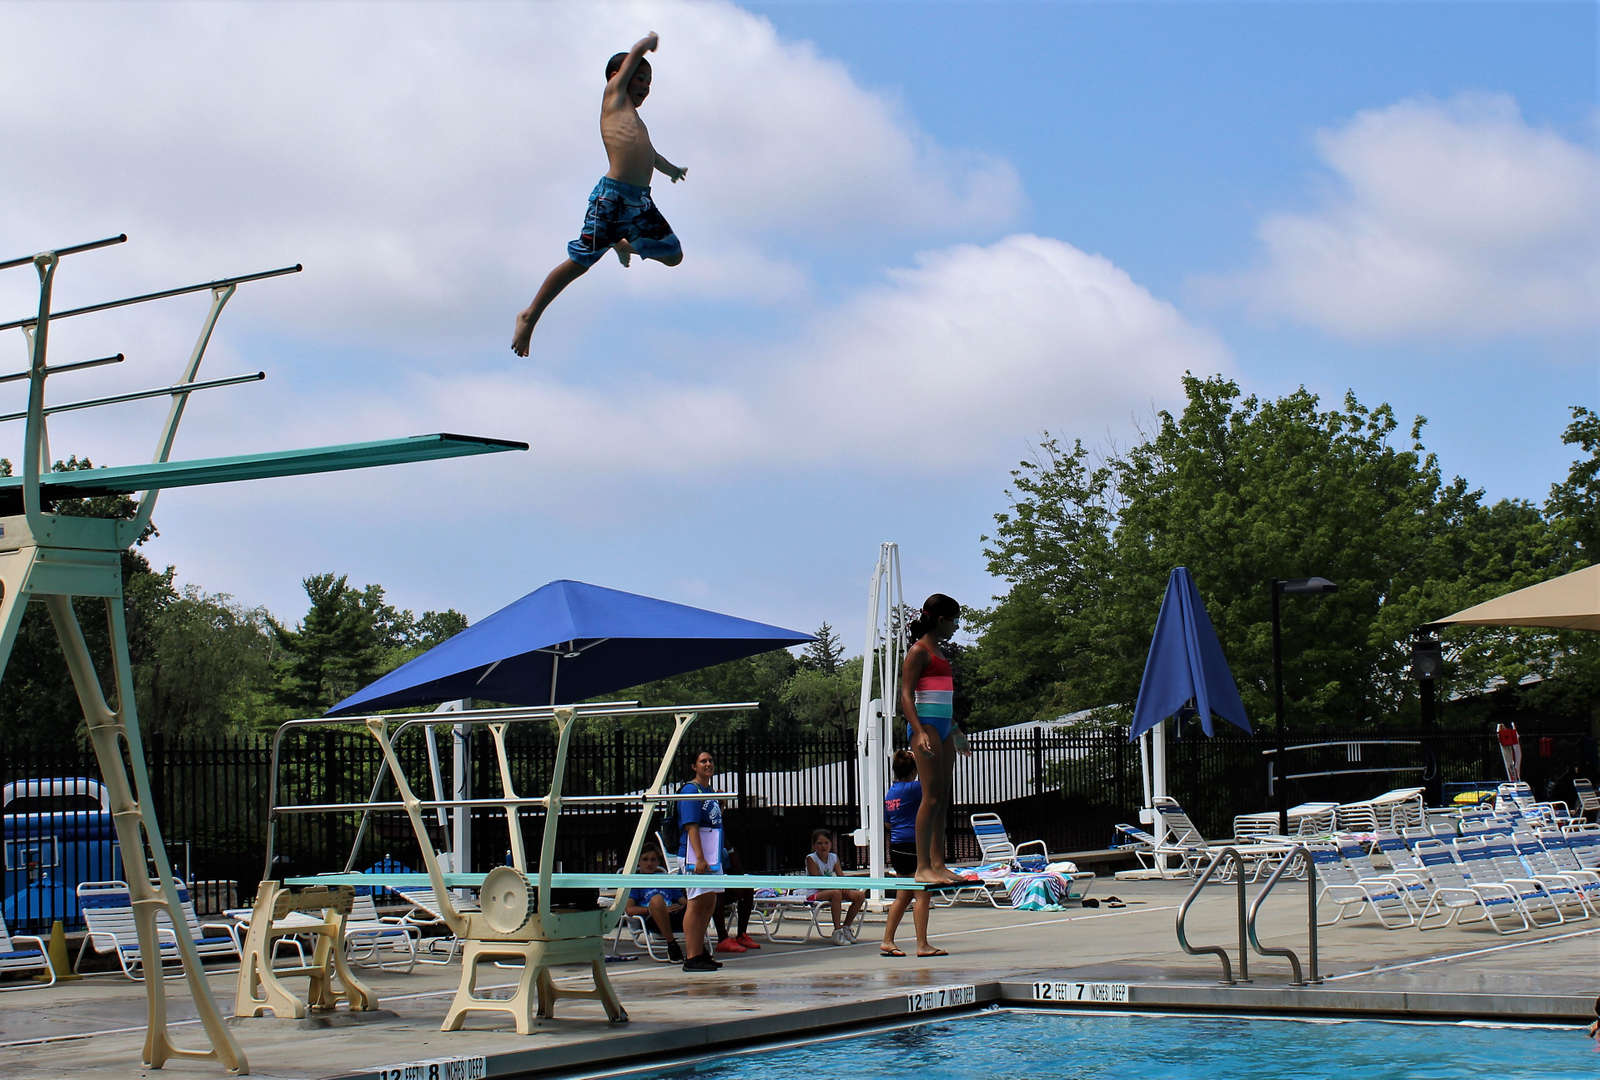 A boy takes a jump off the high dive board.